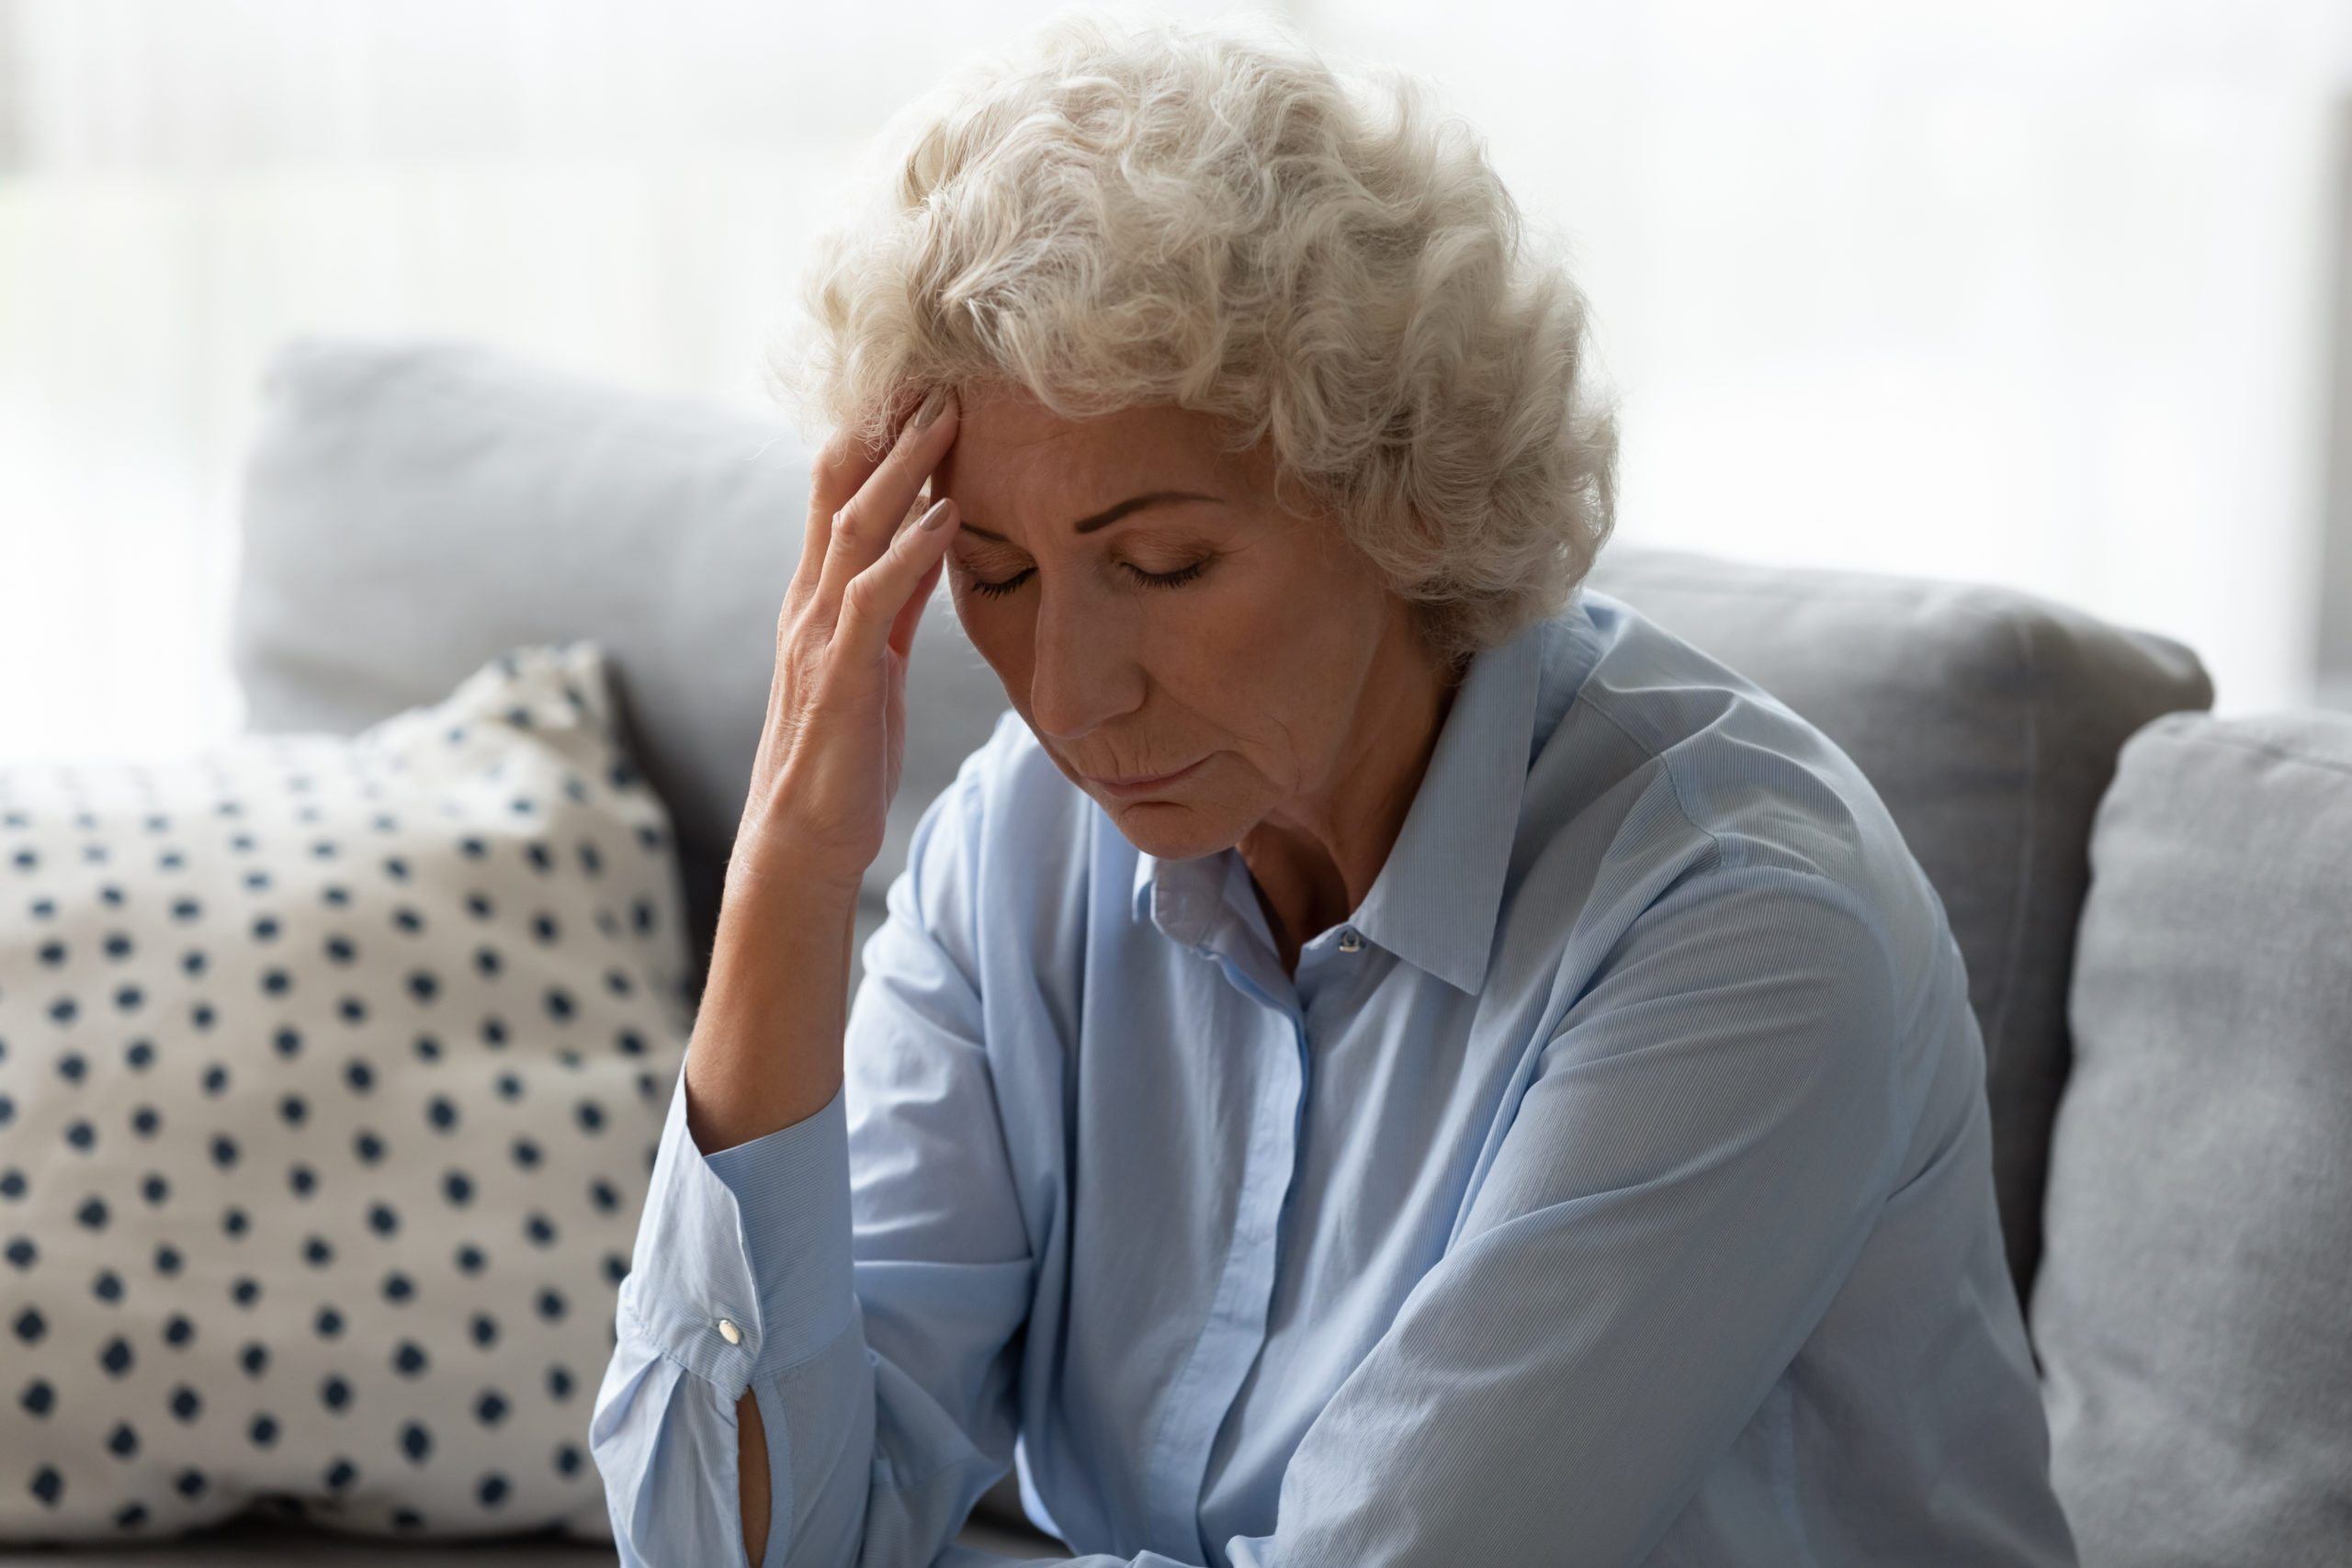 Sick senior woman sit on sofa at home feel distressed suffer from migraine or headache, ill mature female rest on couch touch head have dizziness from high blood pressure, elderly healthcare concept